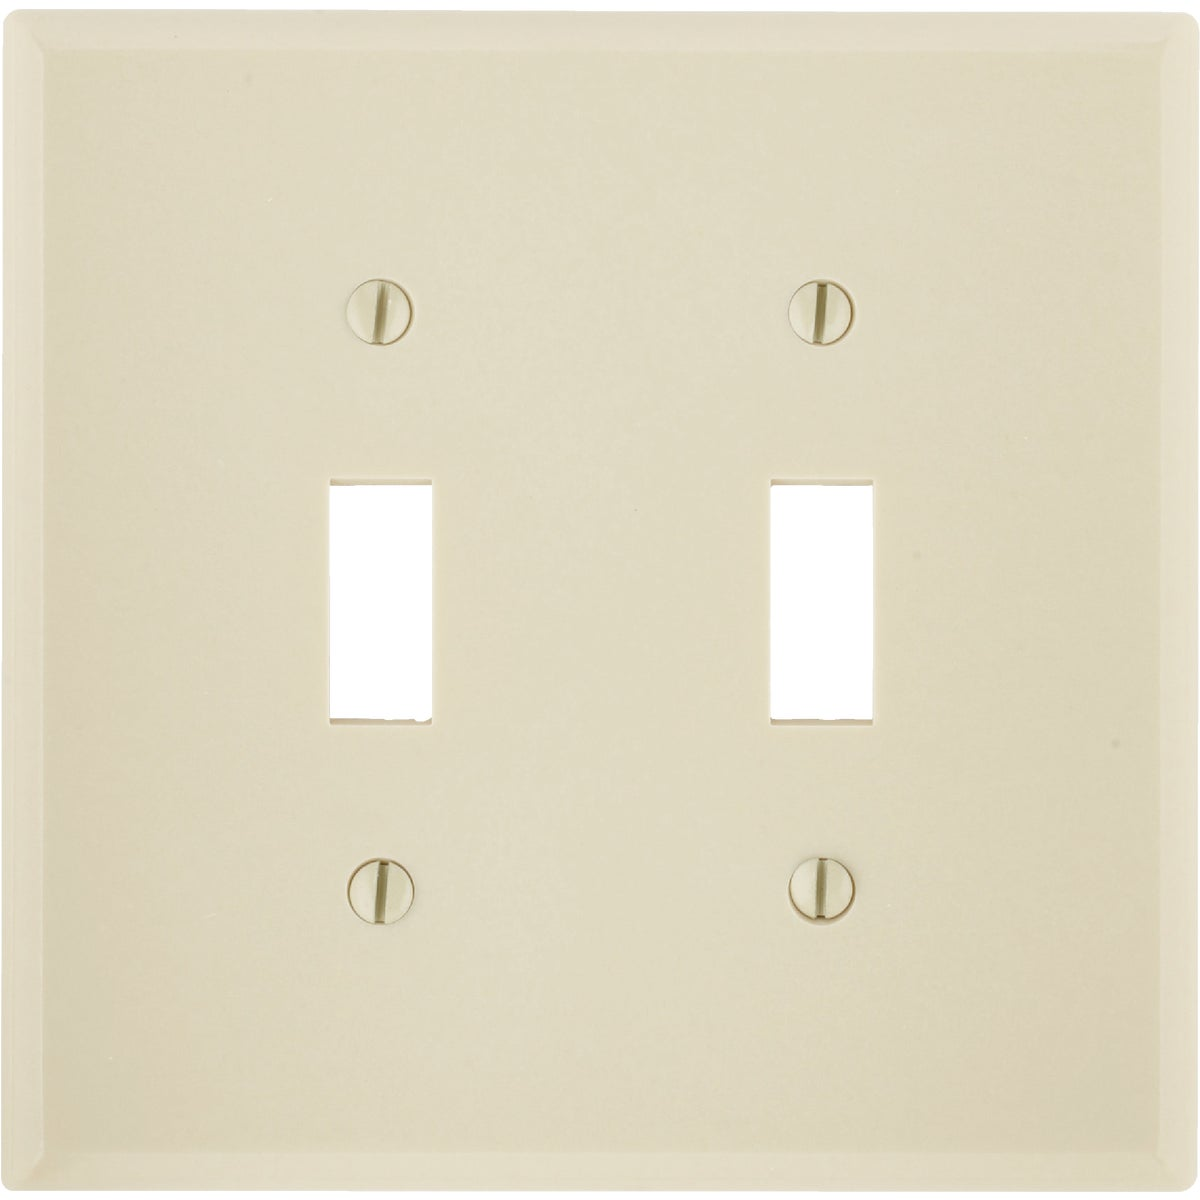 IV 2-TOGGLE WALL PLATE